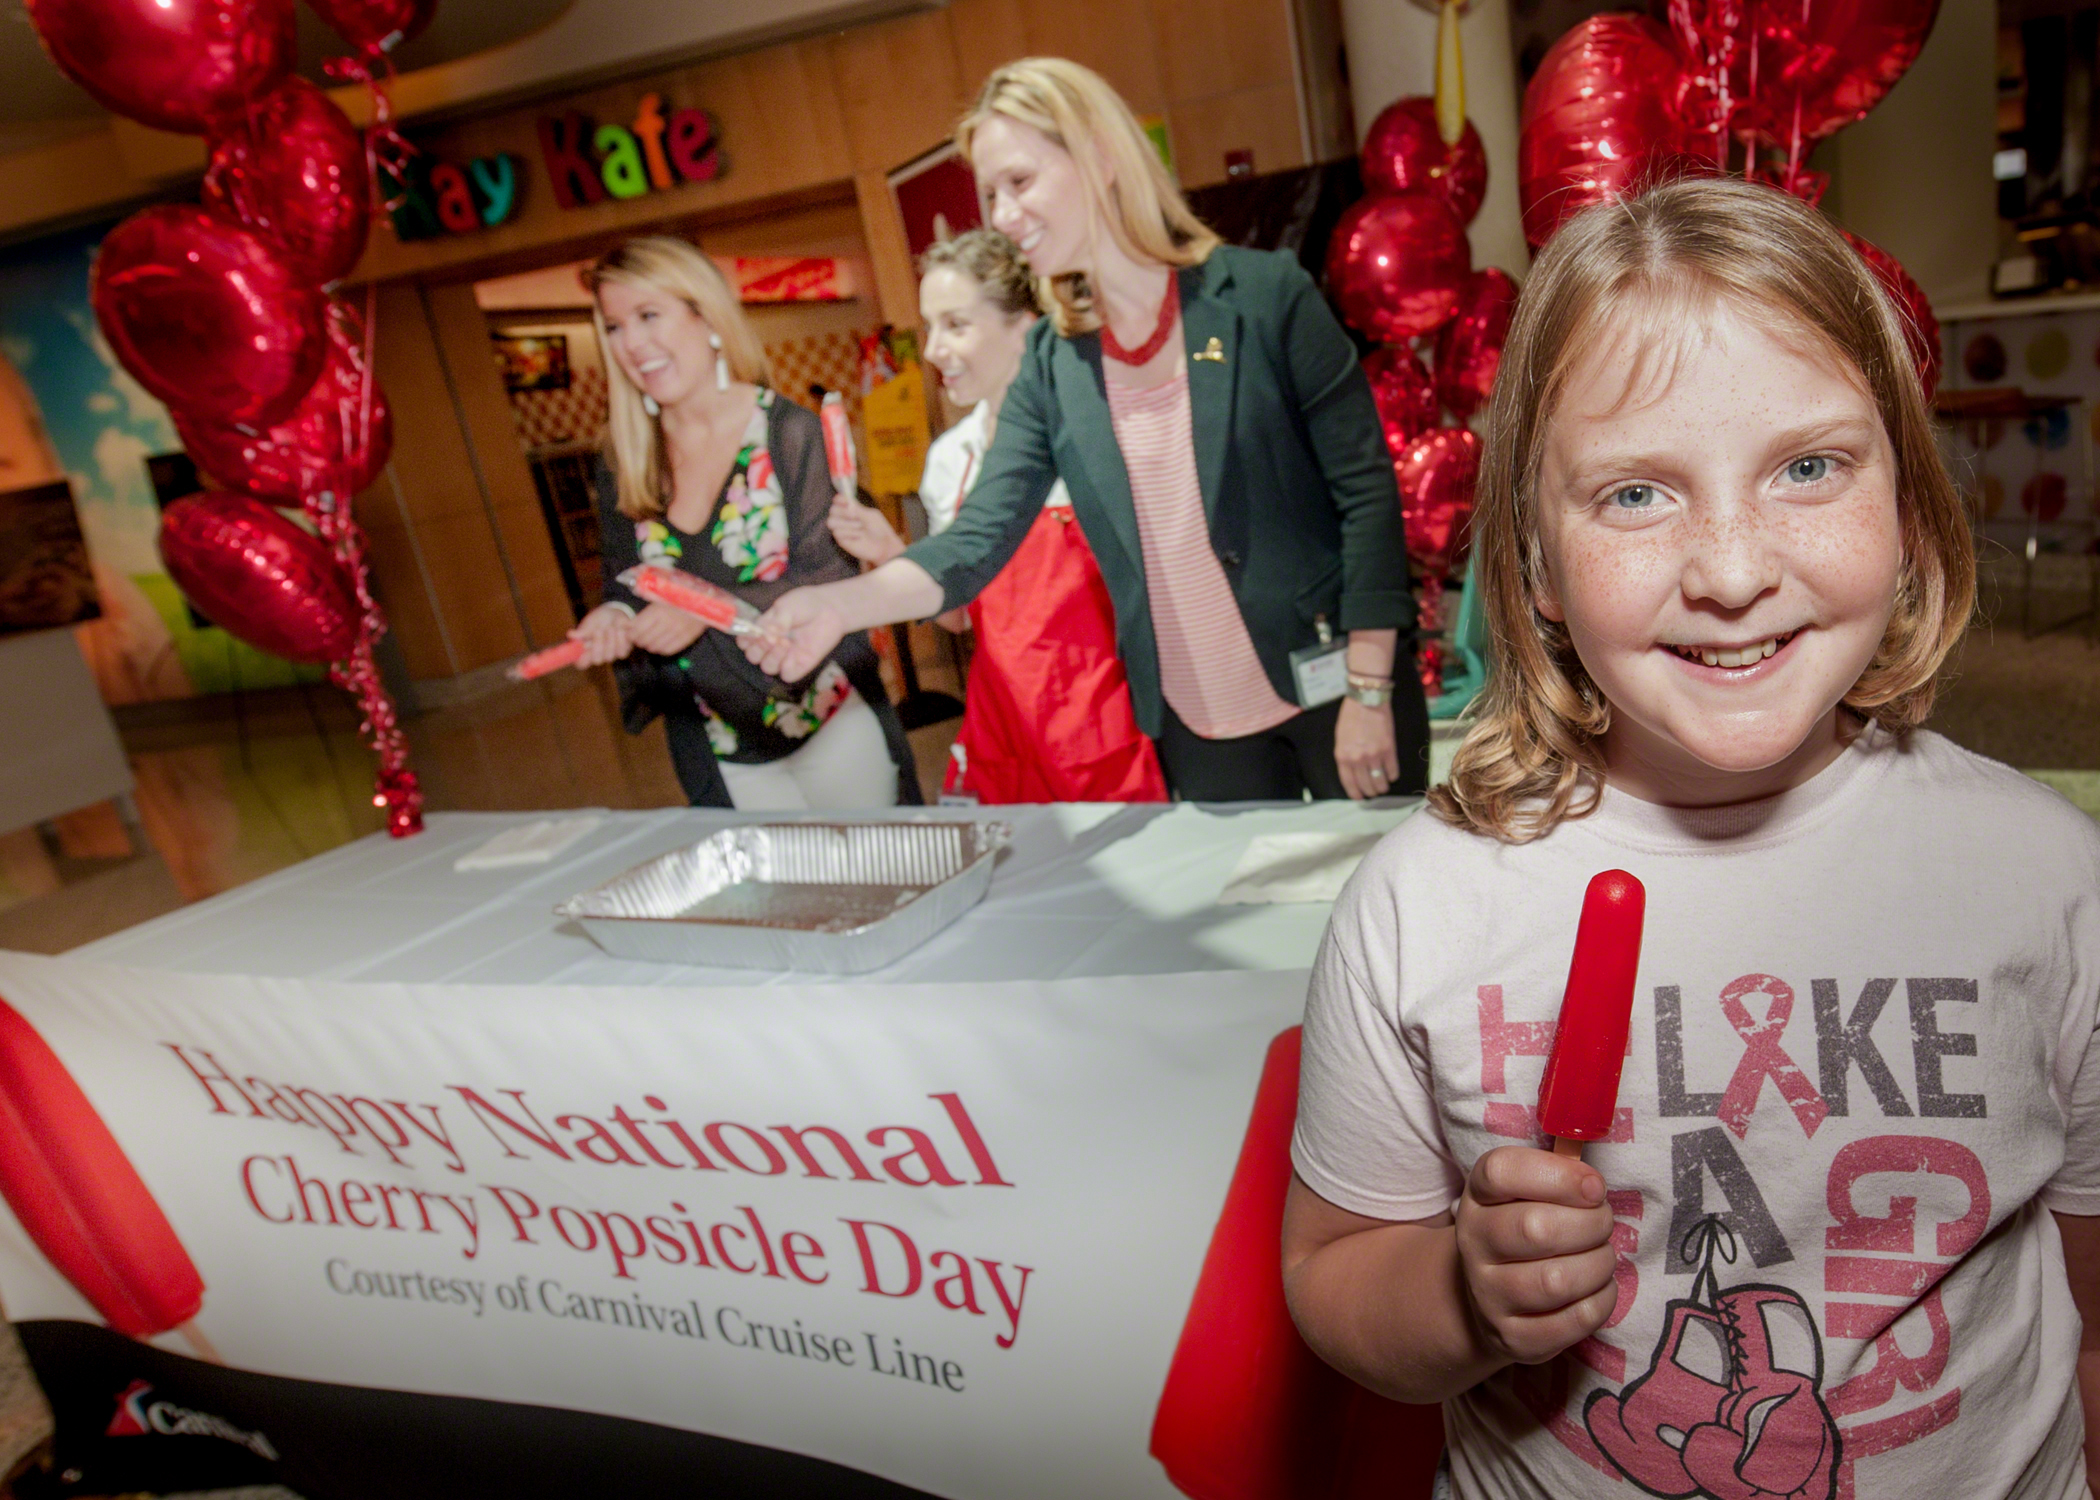 National Cherry Popsicle Day Celebrated at St. Jude Children's Research Hospital® with Special Treats Compliments of Carnival Cruise Line